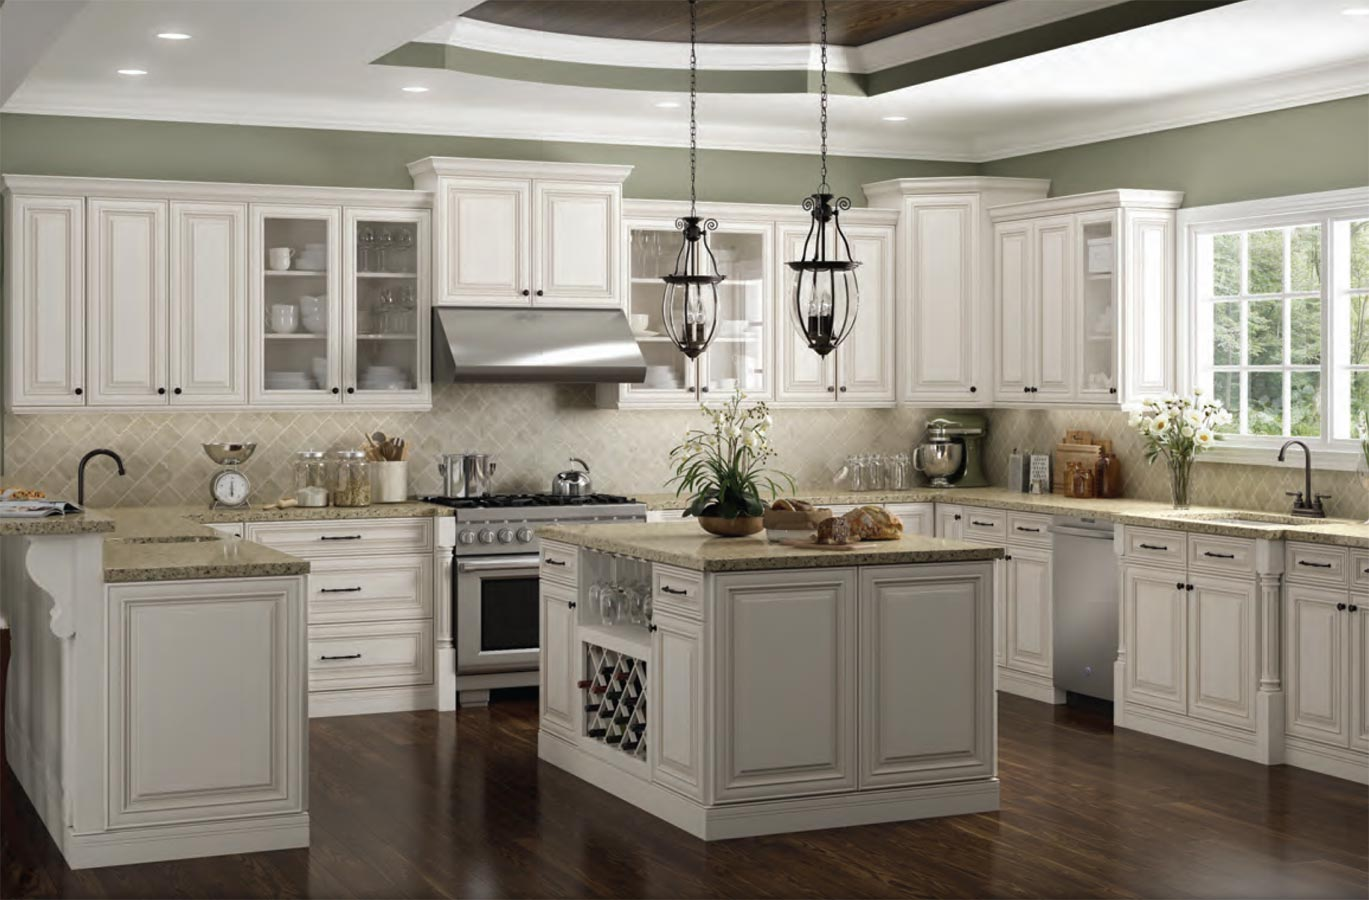 Painted kitchen cabinets cabinet ideas houselogic home for White kitchen wall cabinets